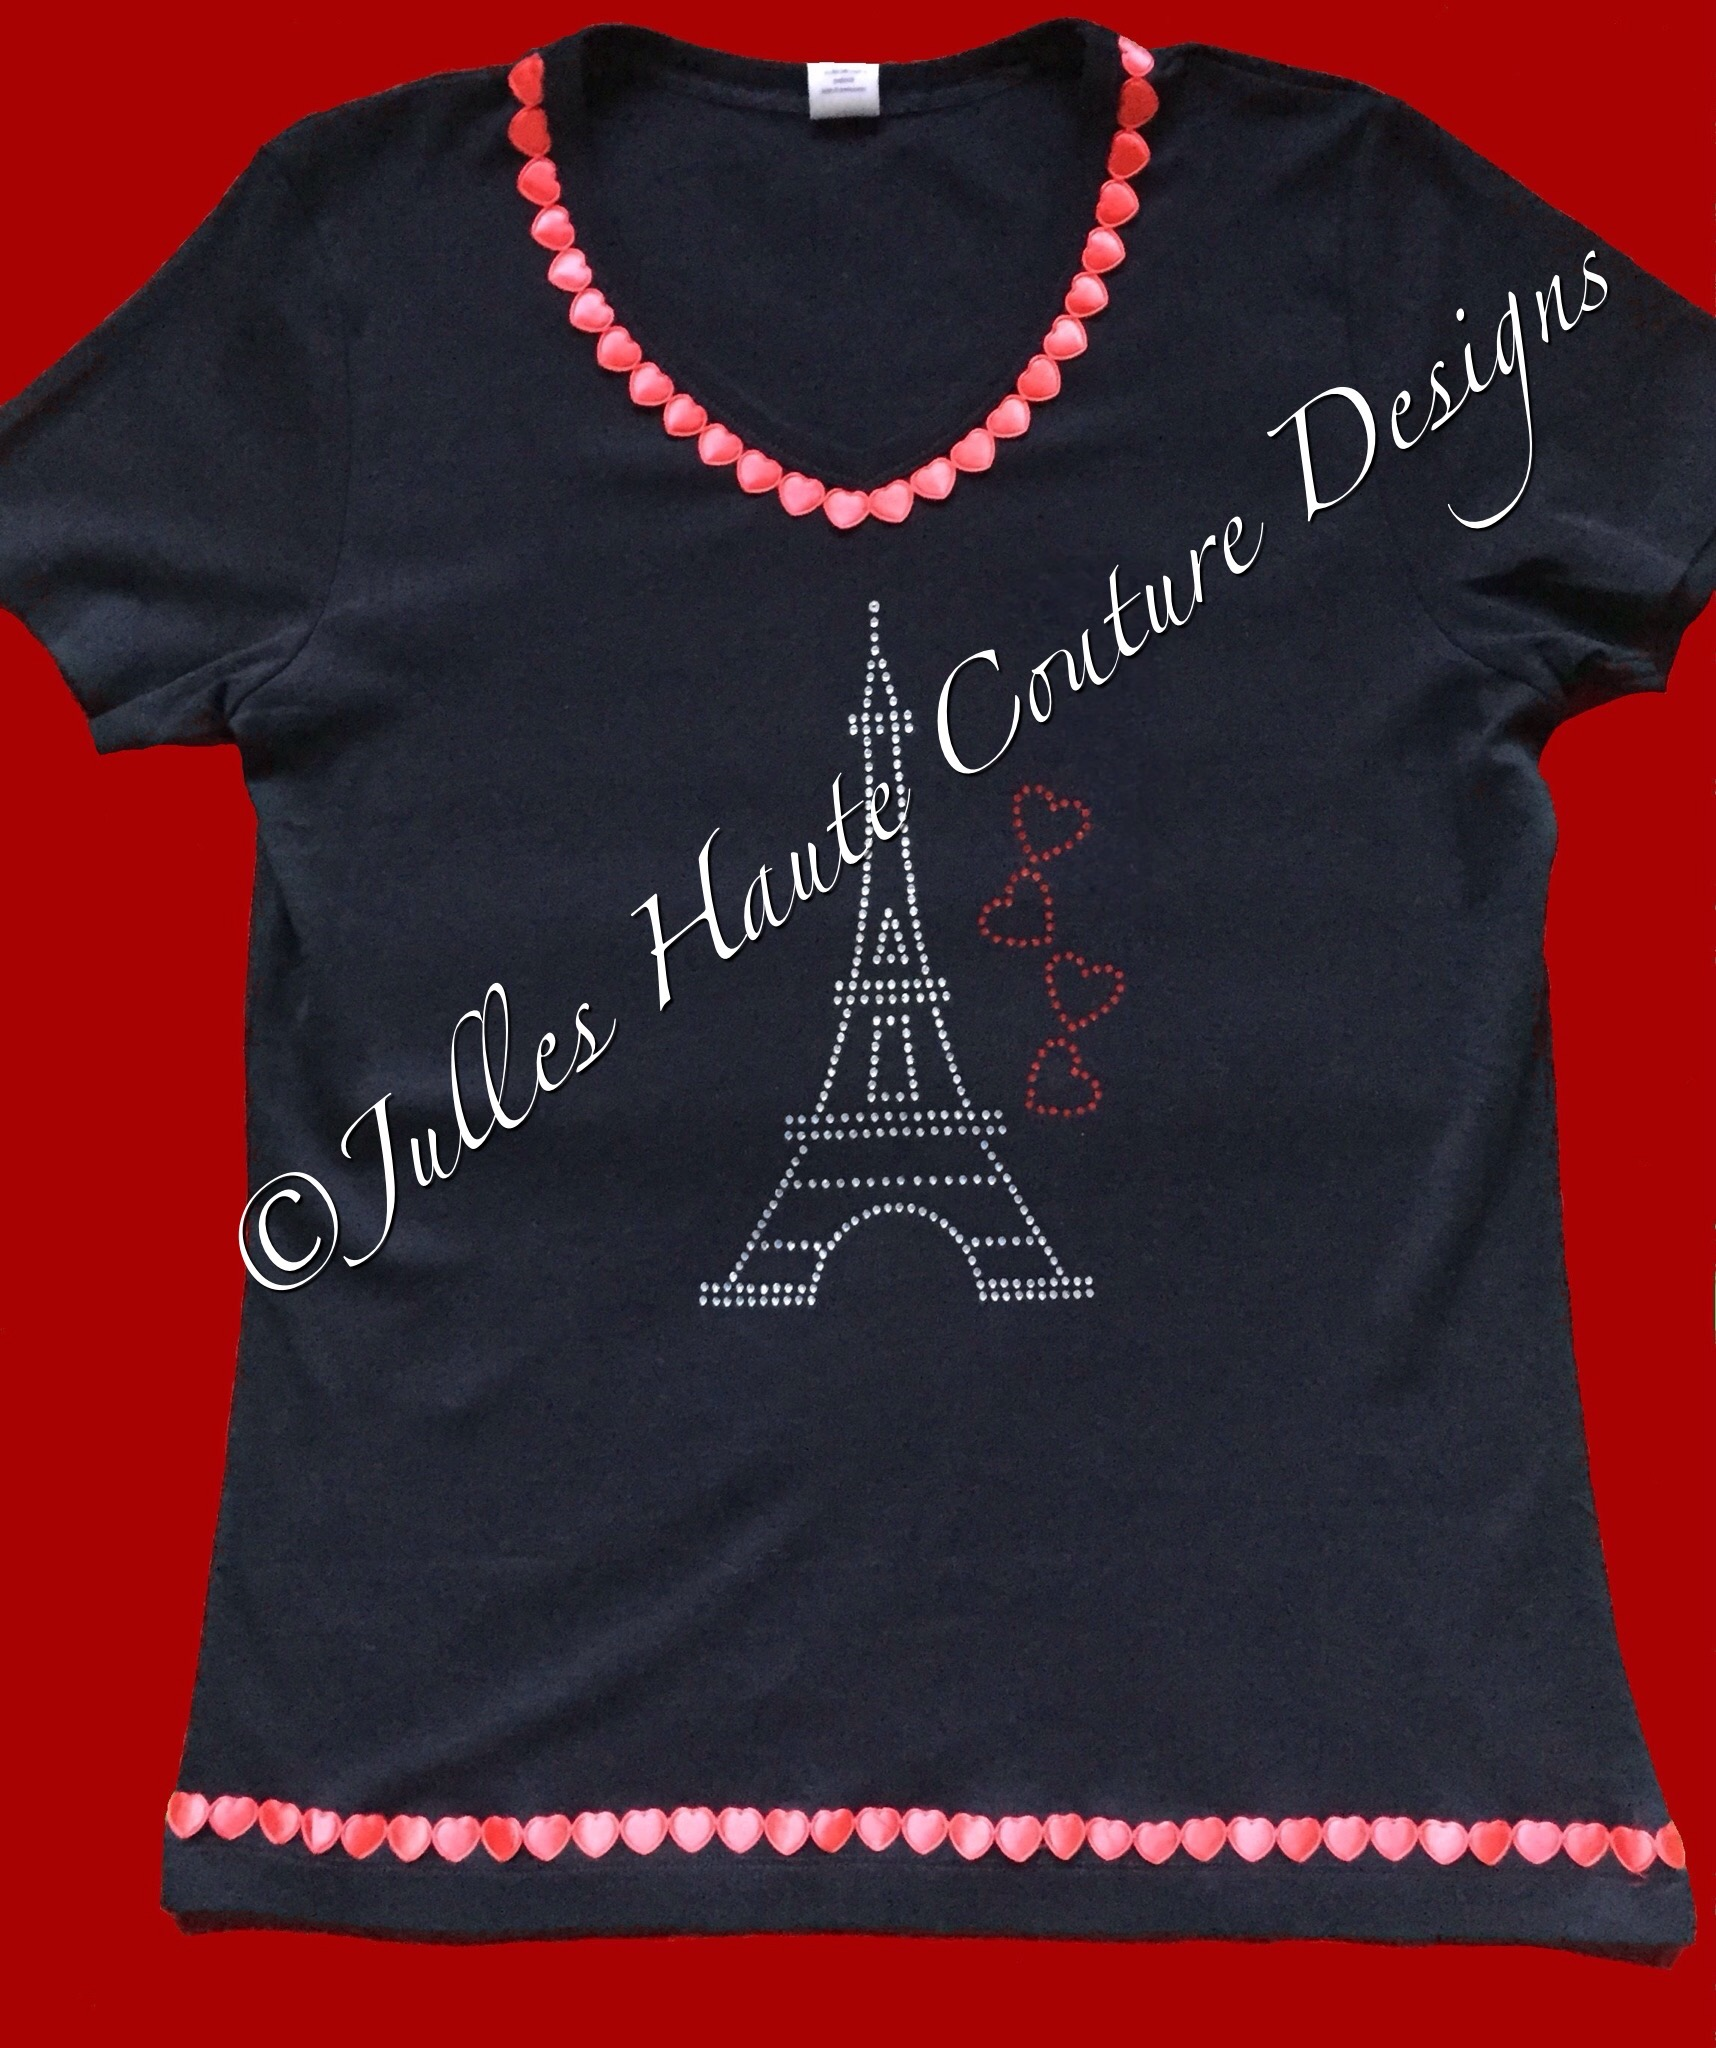 eiffel-tower-t-shirt.jpg